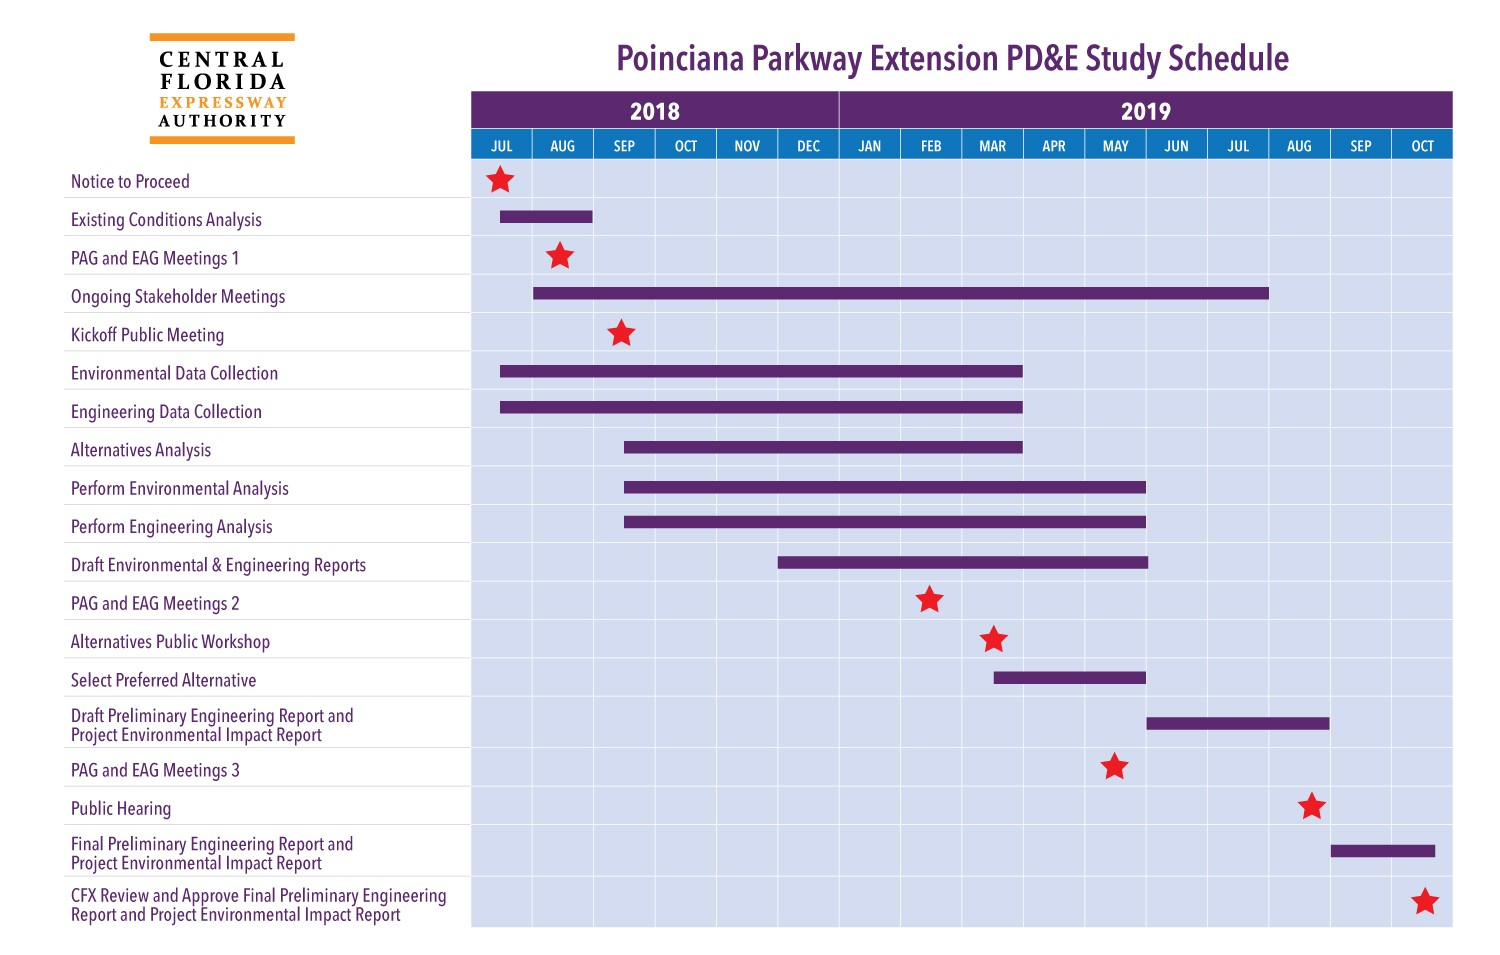 Poinciana Parkway Project Development and Environment (PD&E) Study